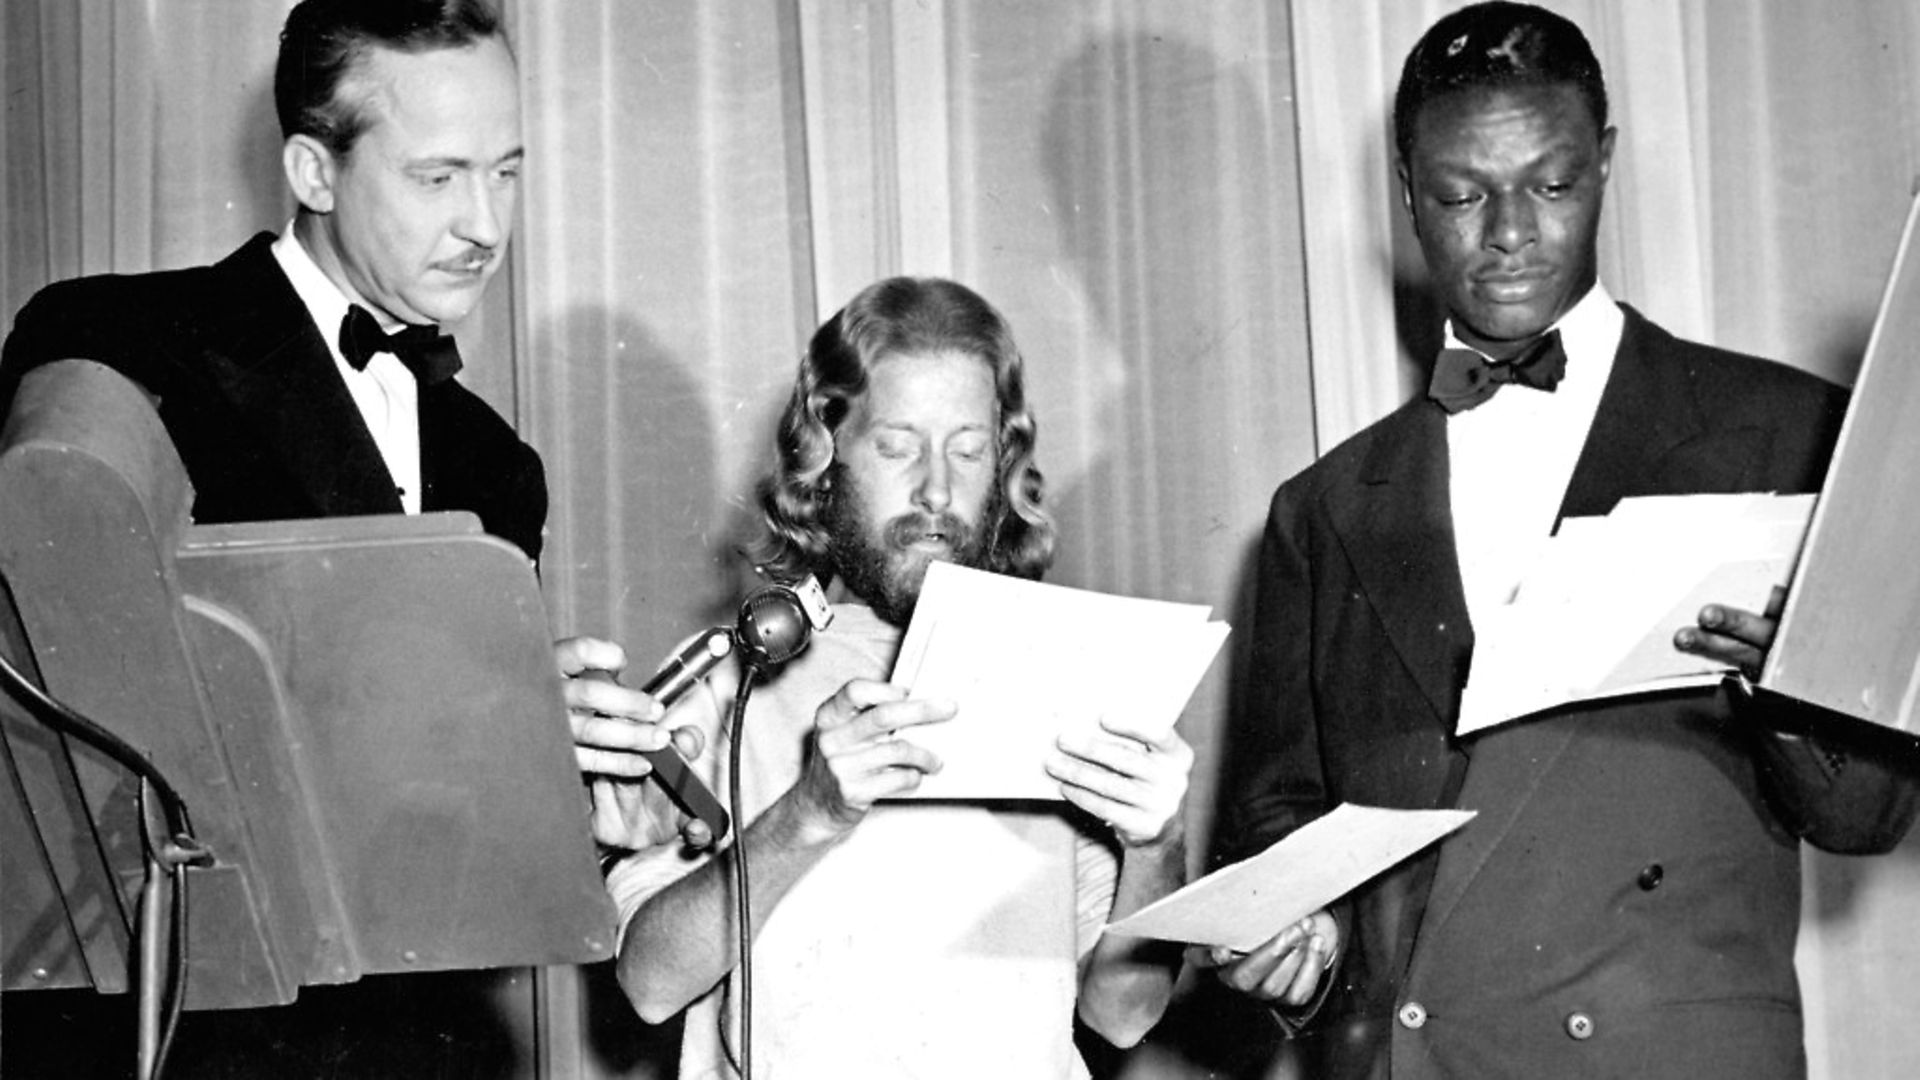 """LOS ANGELES - 1948:  Entertainer and pianist Nat """"King"""" Cole poses for a portrait with #1 hit """"Nature Boy"""" songwriter Eden Ahbez in 1948 in Los Angeles, California. (Photo by Michael Ochs Archives/Getty Images) - Credit: Archant"""